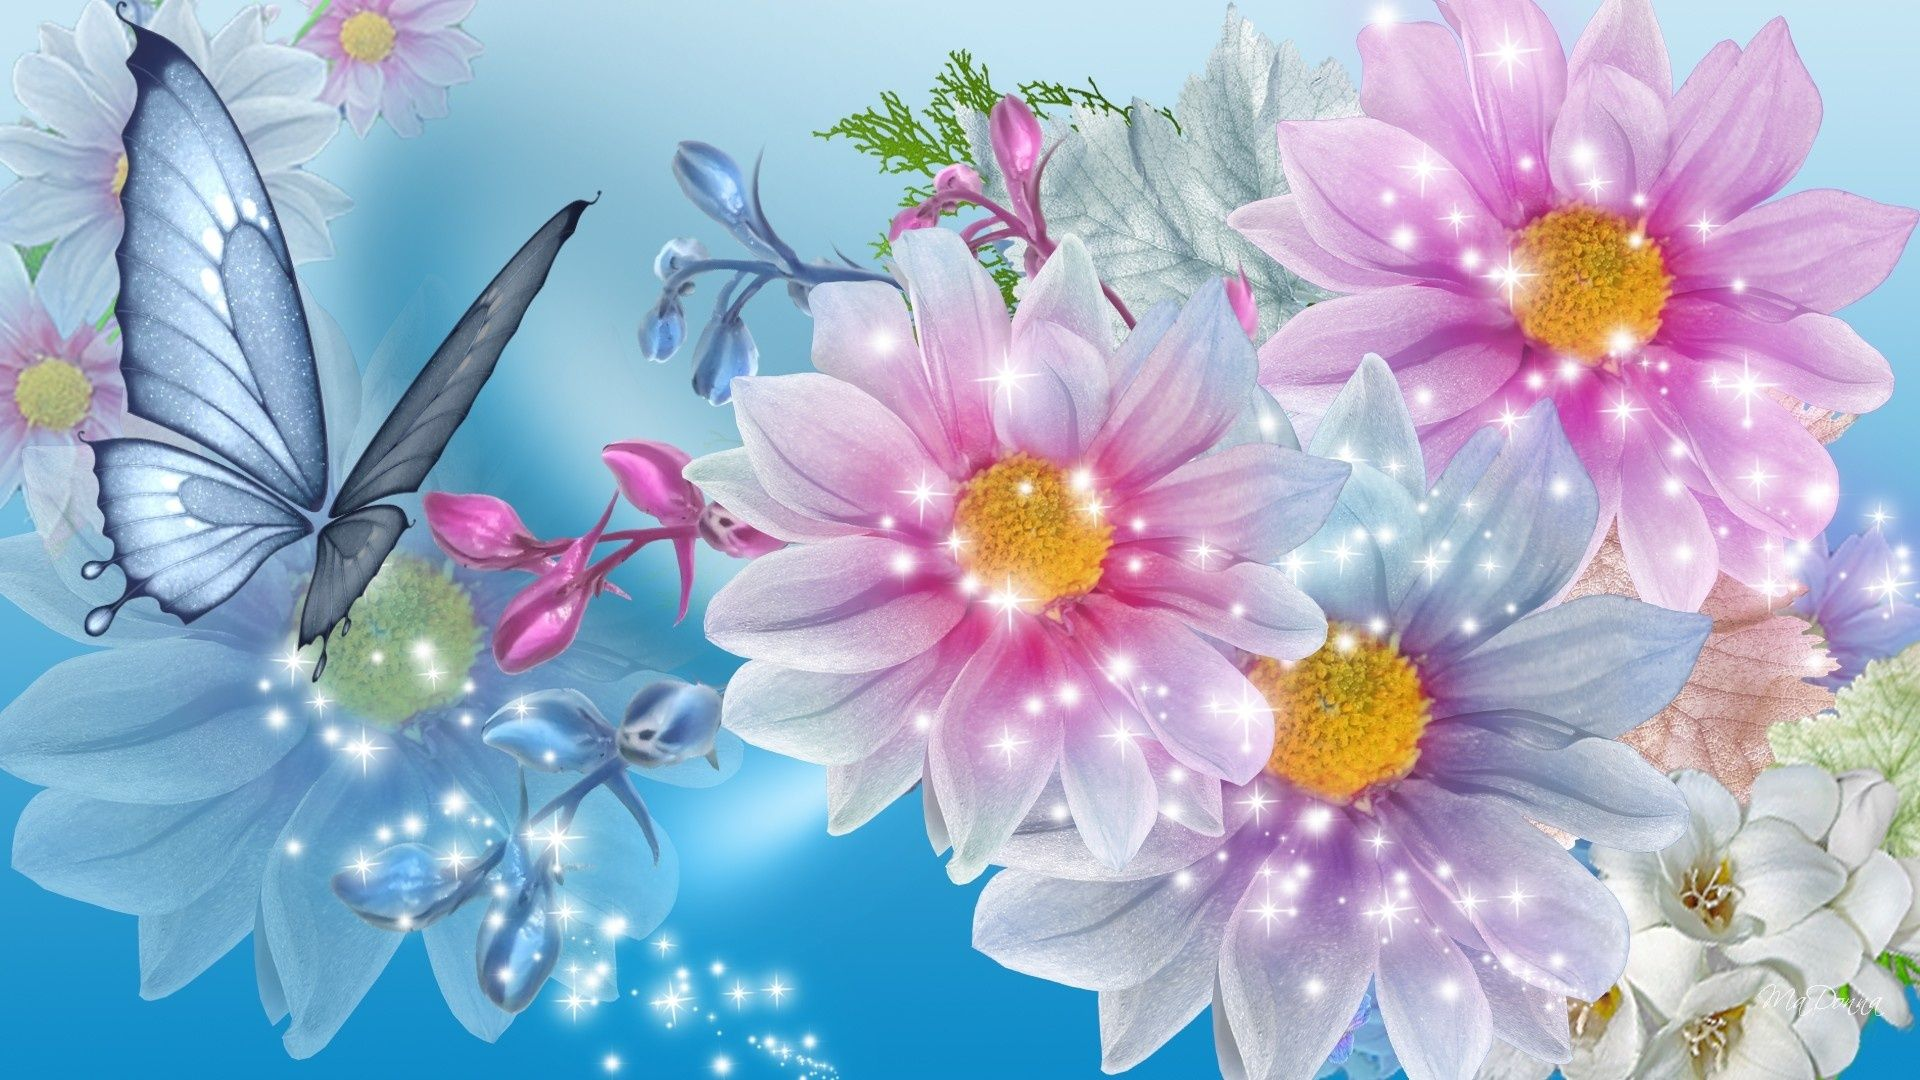 30 beautiful flower wallpaper free to download lawyer Beautiful flowers photos